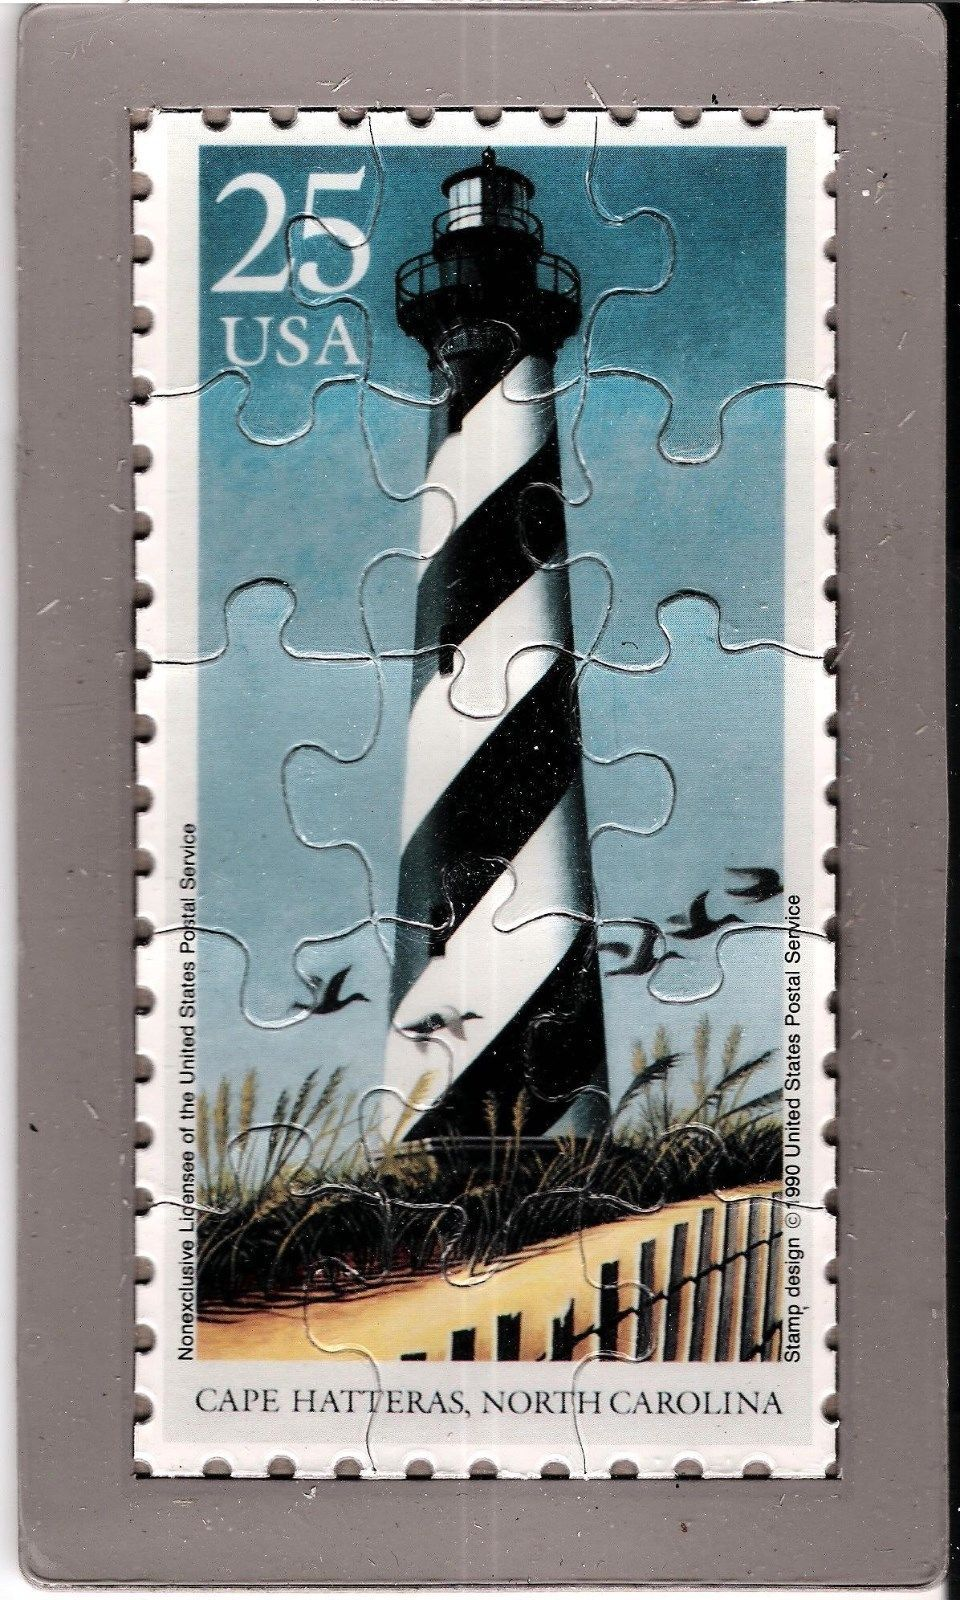 Primary image for USPS POSTCARD-Lighthouses Commemorative Puzzle series-Cape Hatteras, NC